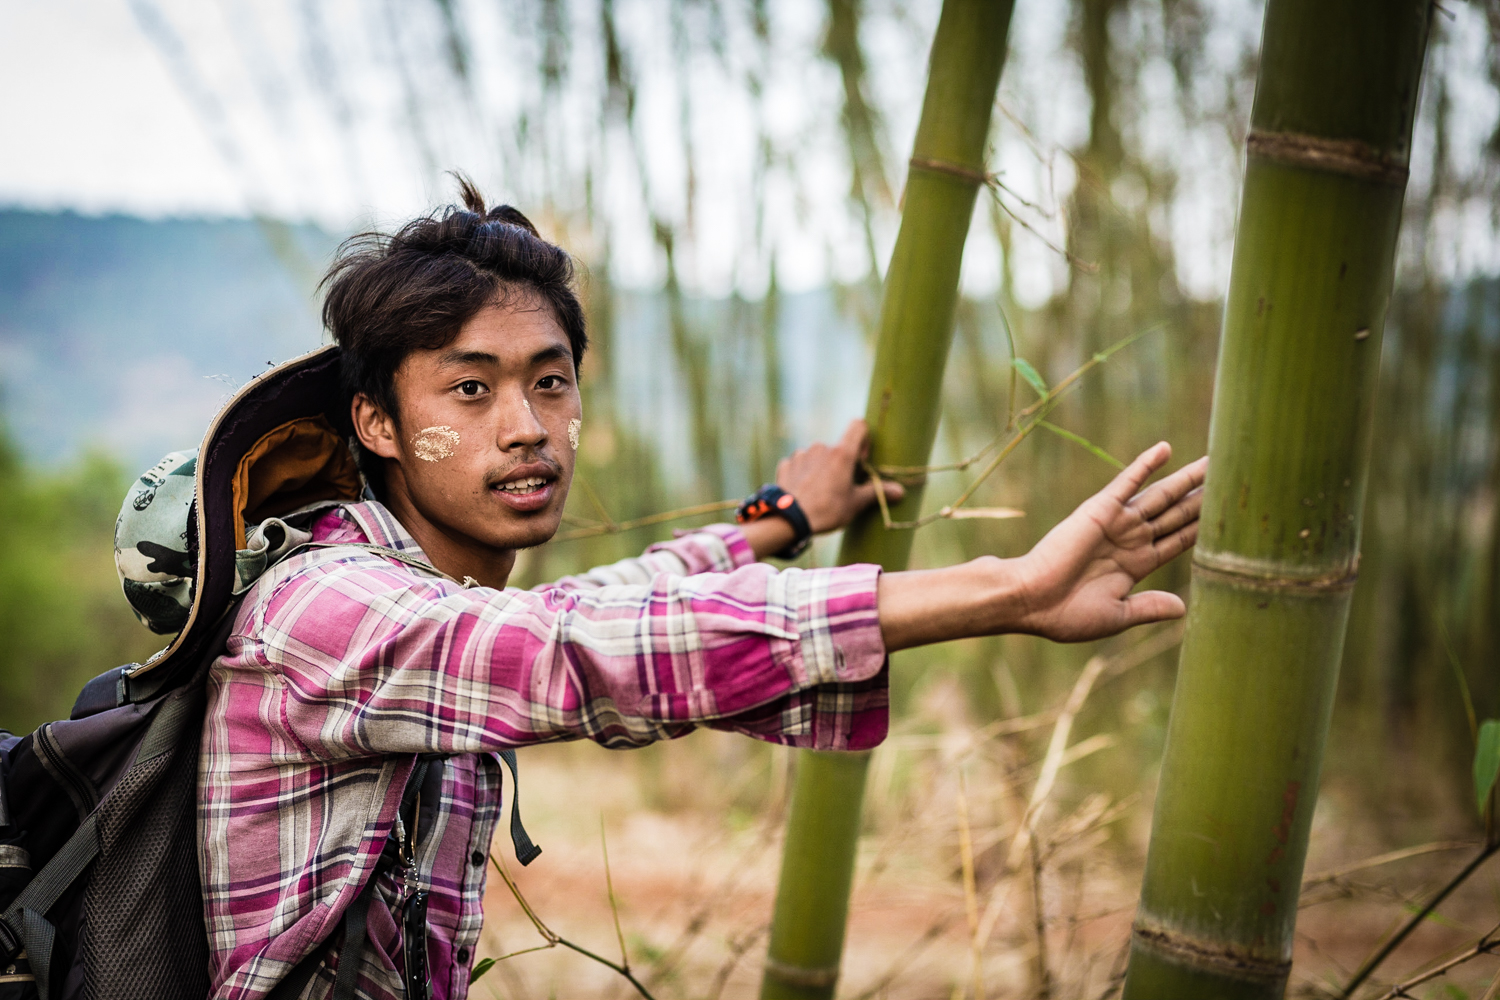 Aakash, our guide, explaining to us how the locals use bamboo.